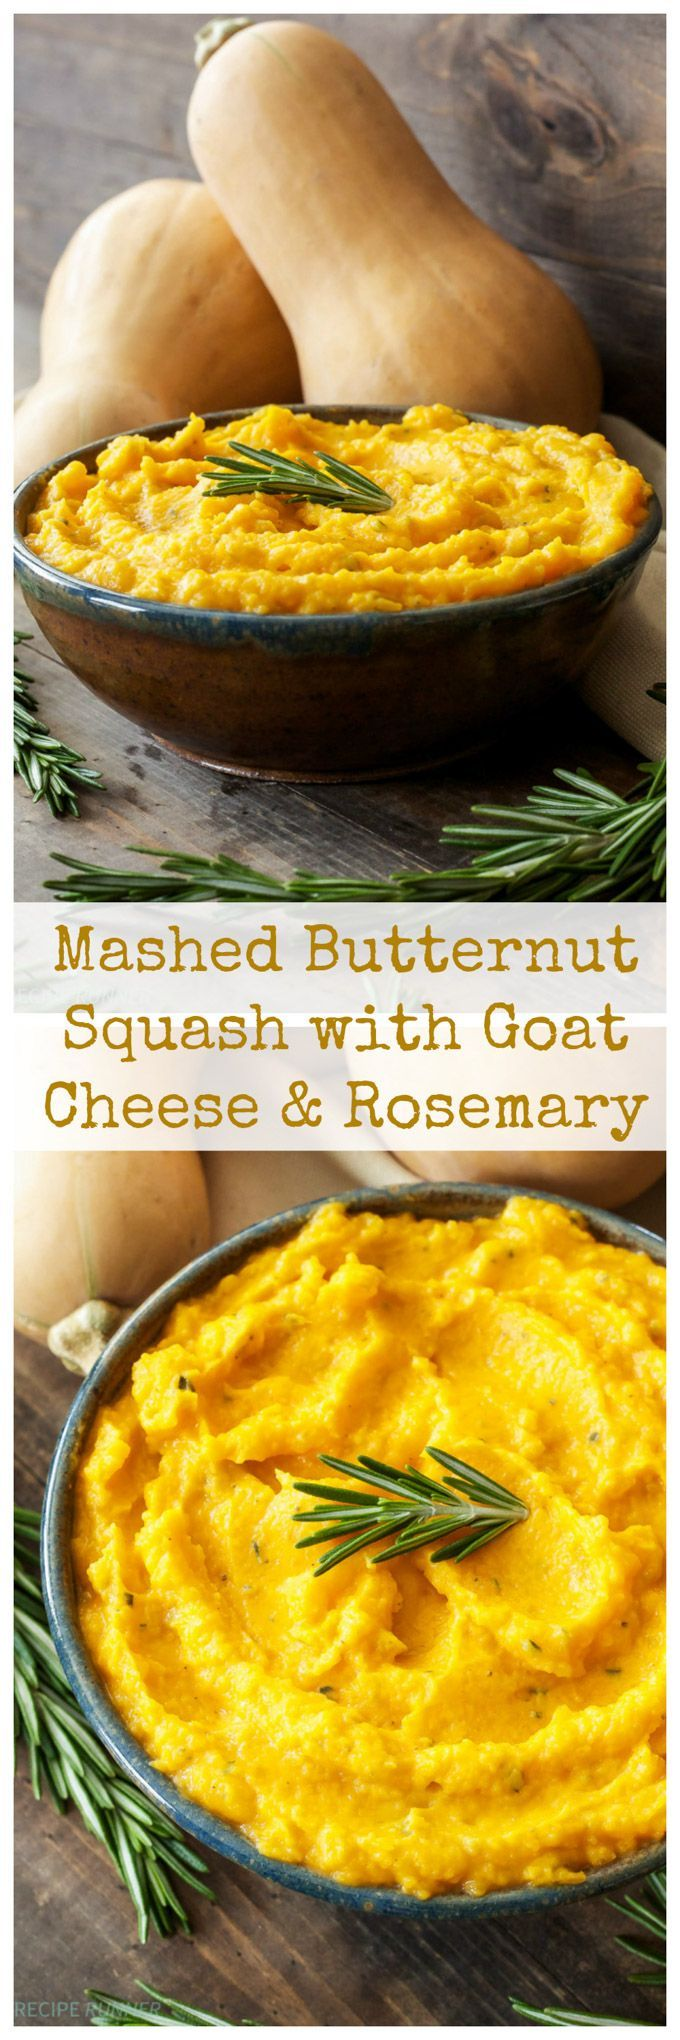 Mashed Butternut Squash with Goat Cheese and Rosemary | Goat cheese &…